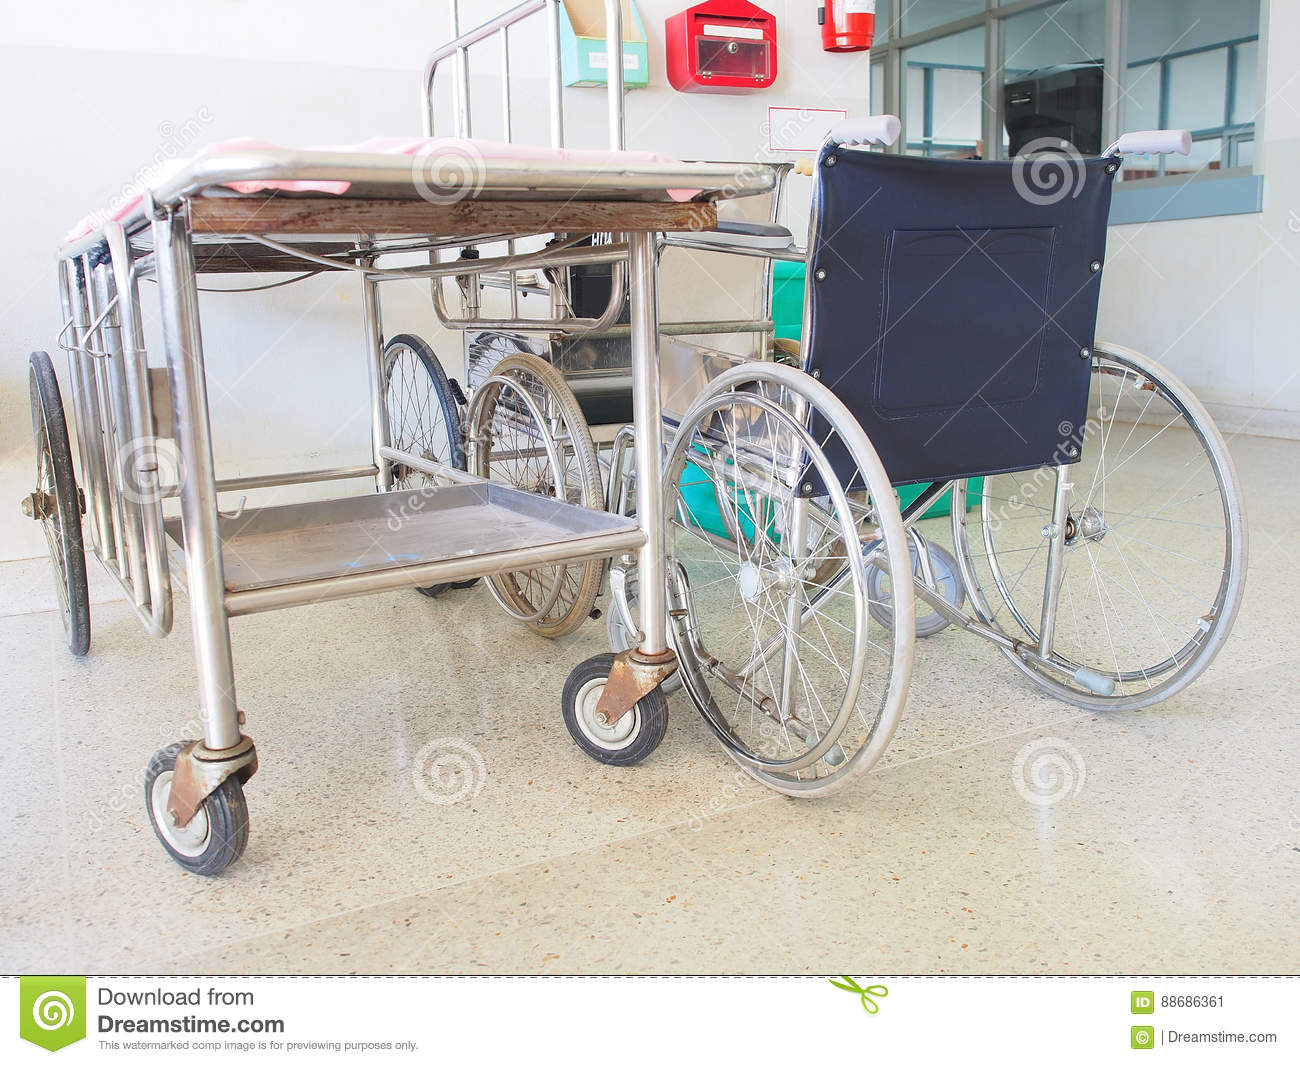 Bed Wheelchair Wheelchair And Patient Bed Stock Image Image Of Medicine 88686361